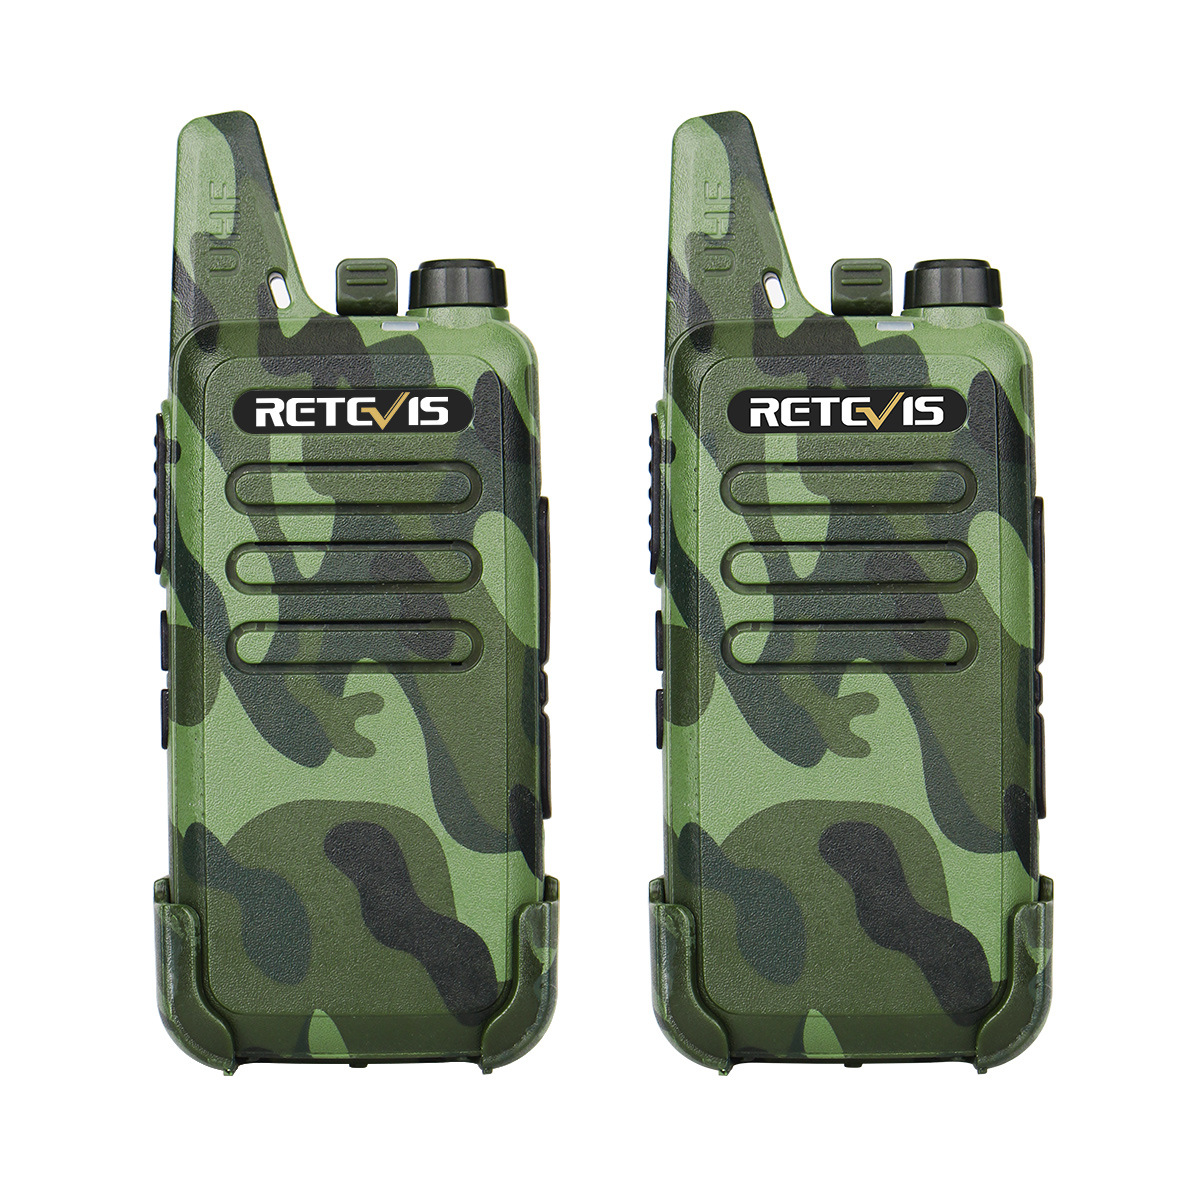 Retevis RT22 Walkie-talkie Camouflage Color One Pair Of Dress Ultra-Thin Tile Force KD-C1